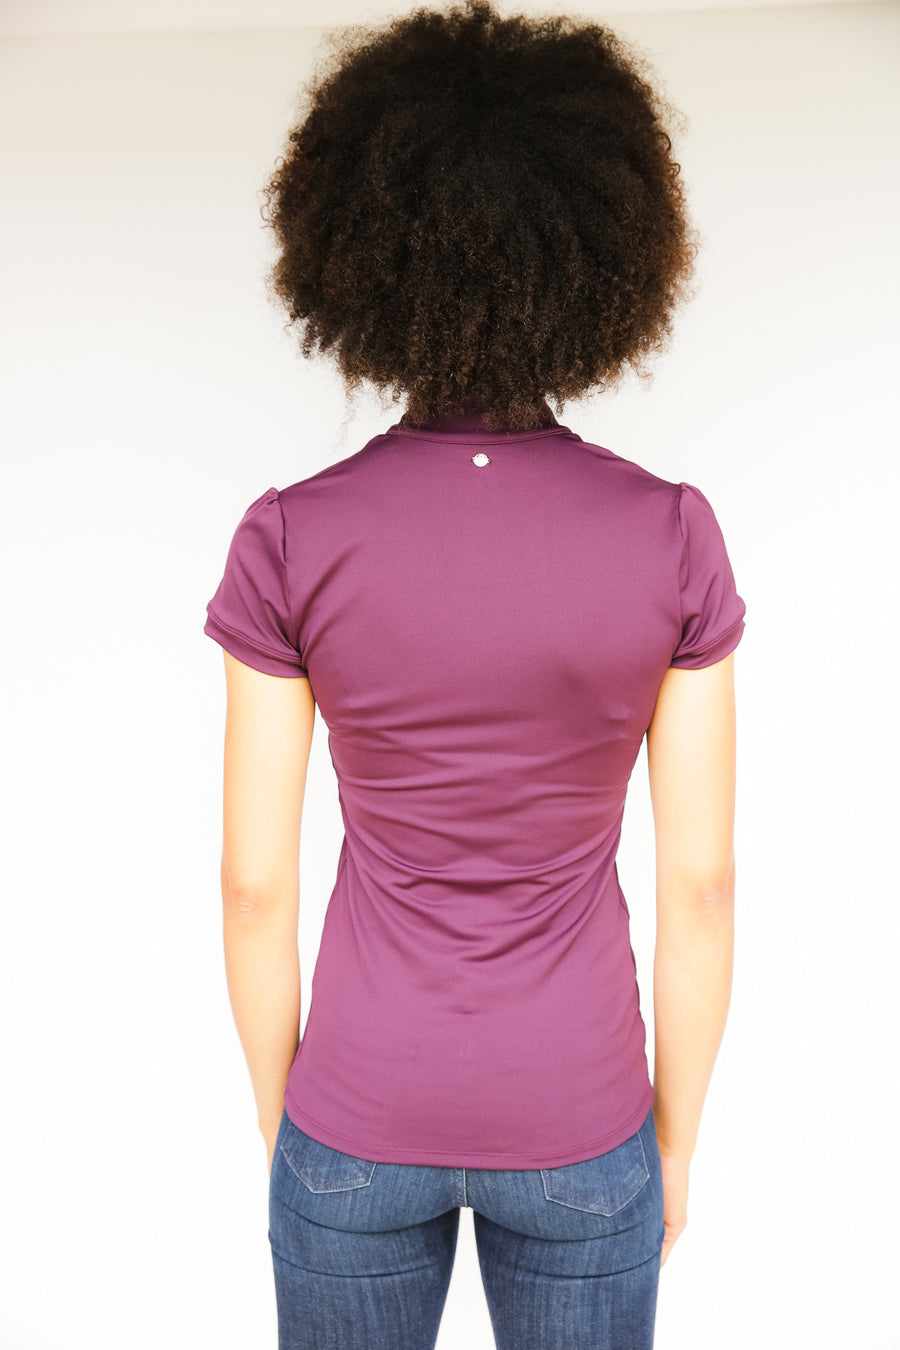 Short Sleeve Women's Mandarin Collar Performance Shirt